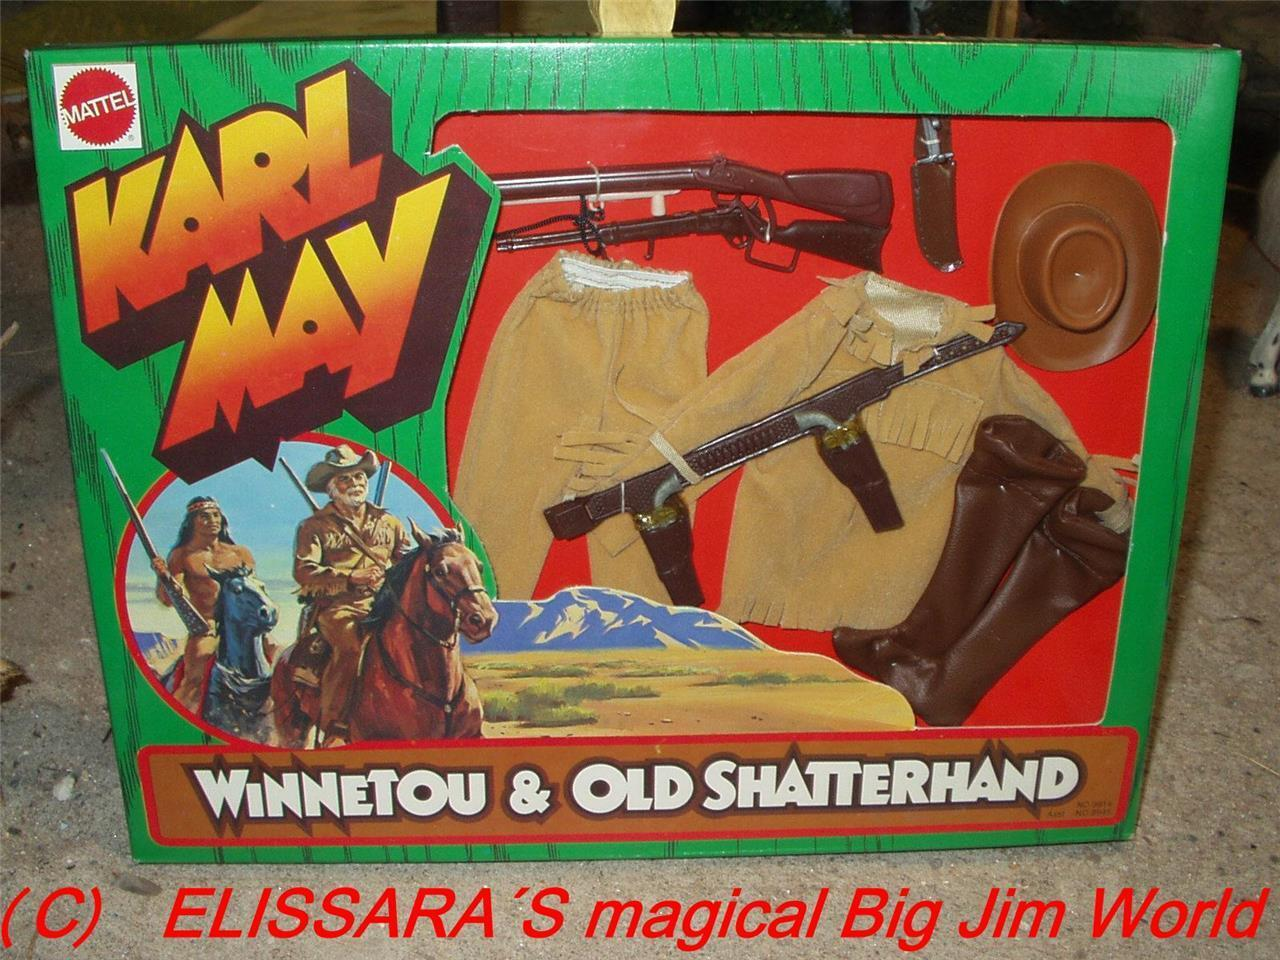 Big Jim - Karl May - OLD SHATTERHAND - Winnetou - OVP   MIB - Mattel - no.9914